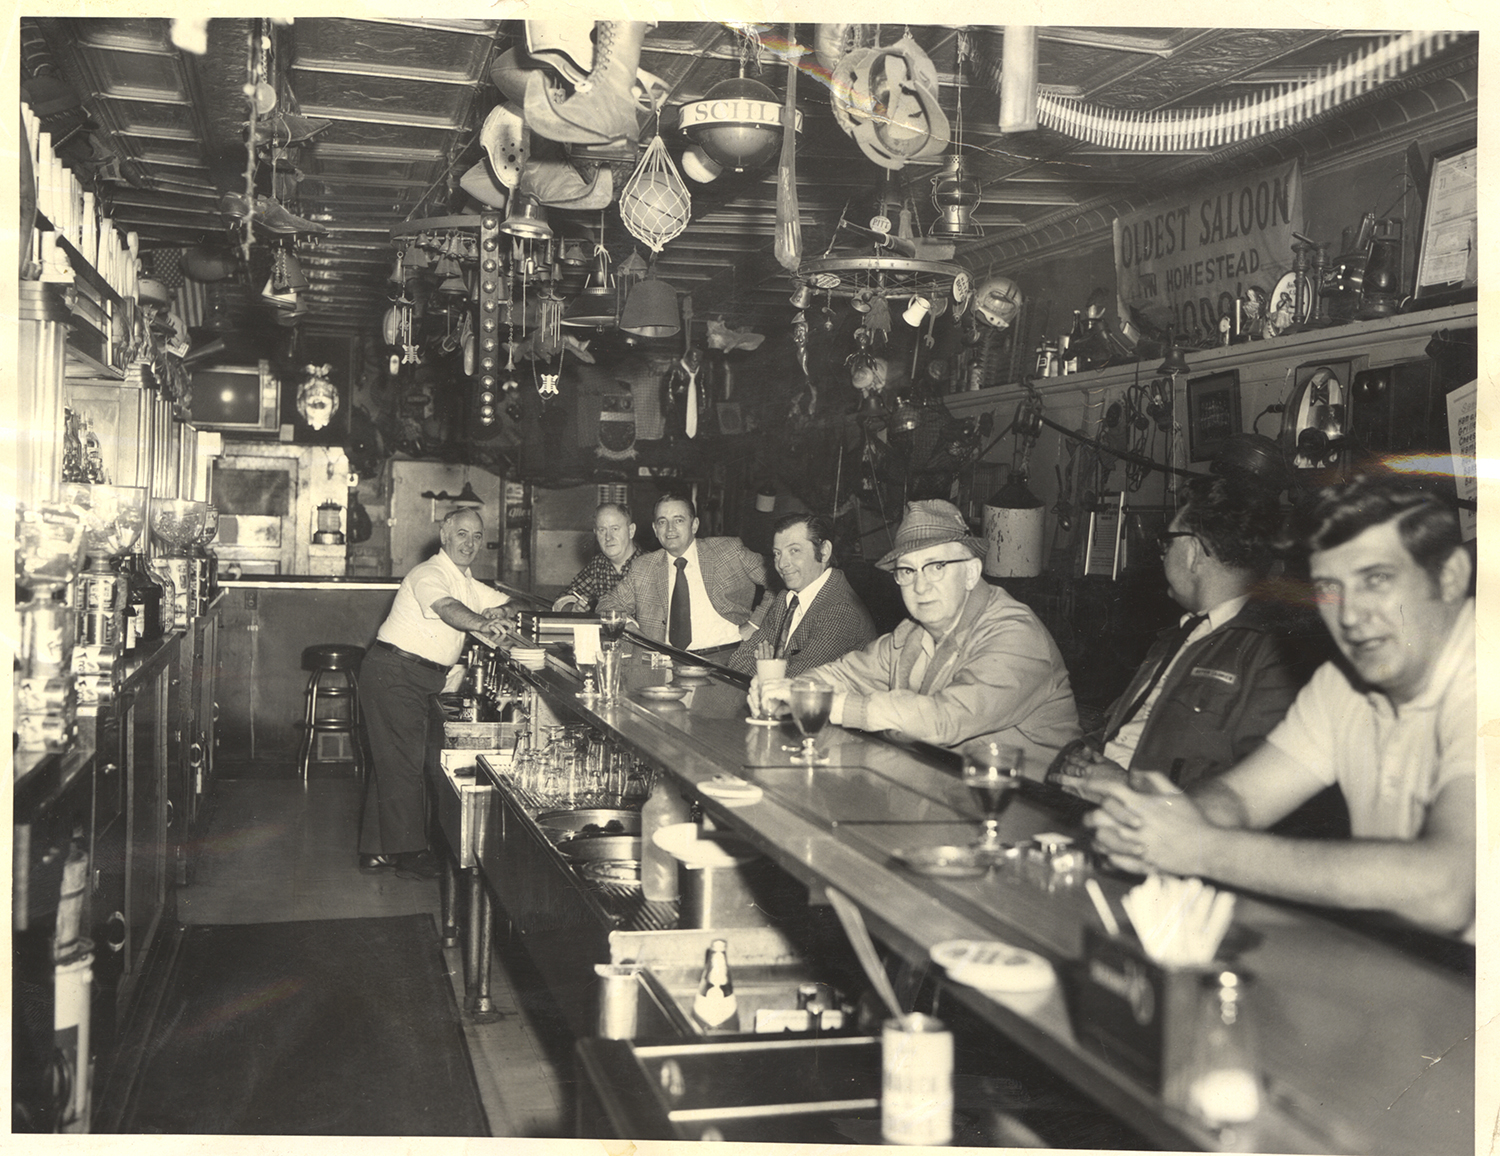 Faces along the bar at Chiodo's Tavern, c. 1970. Chiodo's Tavern Collection, 2005.173, Detre Library & Archives, Heinz History Center.